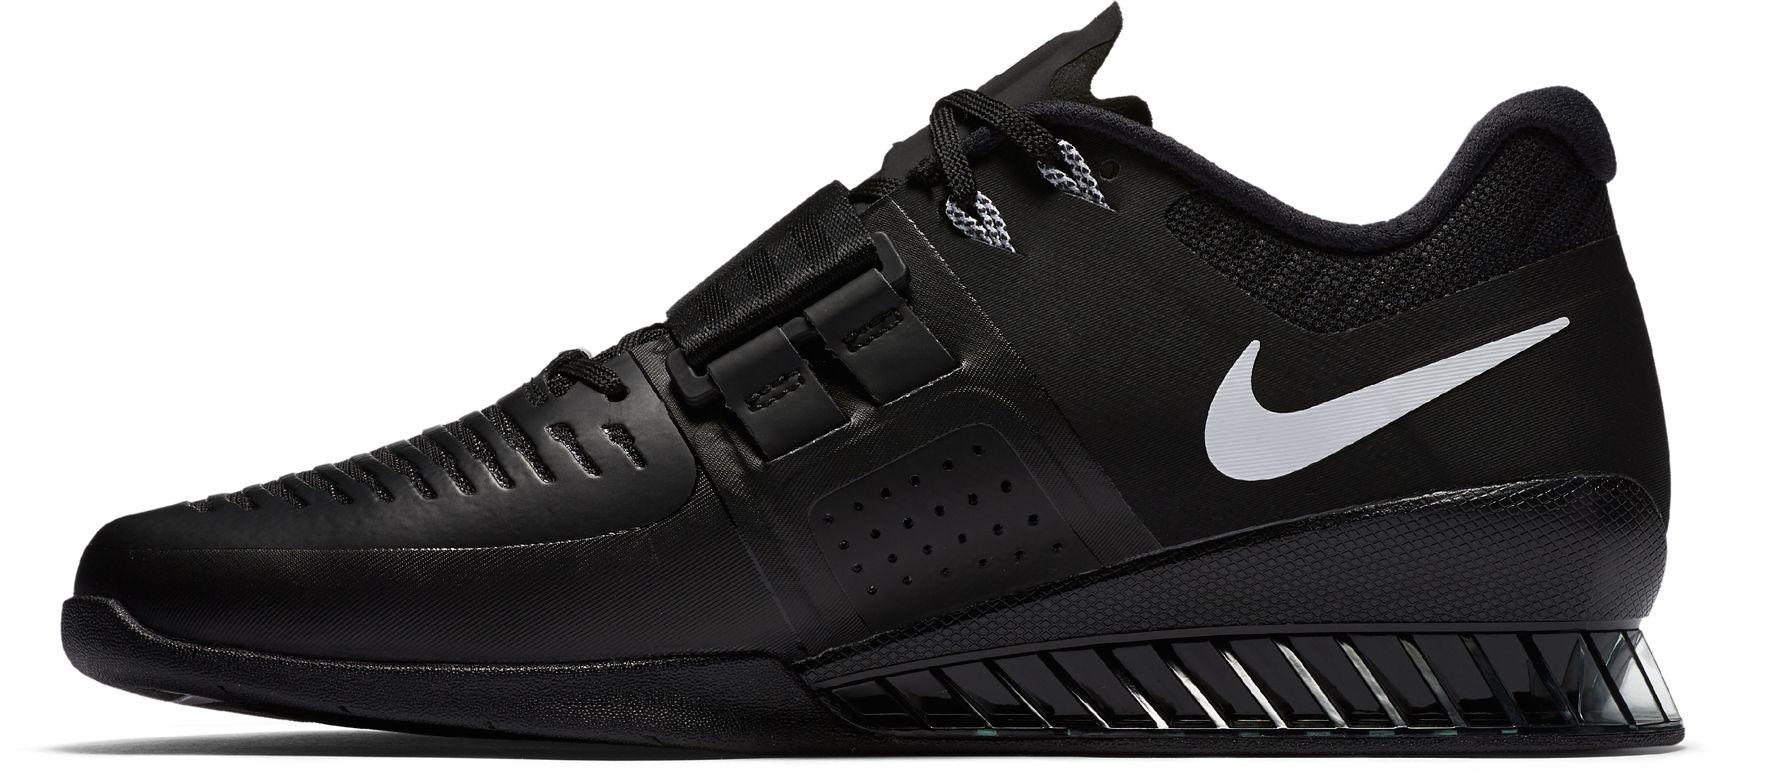 921623fb1658 Lyst - Nike Romaleos 3 Weightlifting Shoe in Black for Men